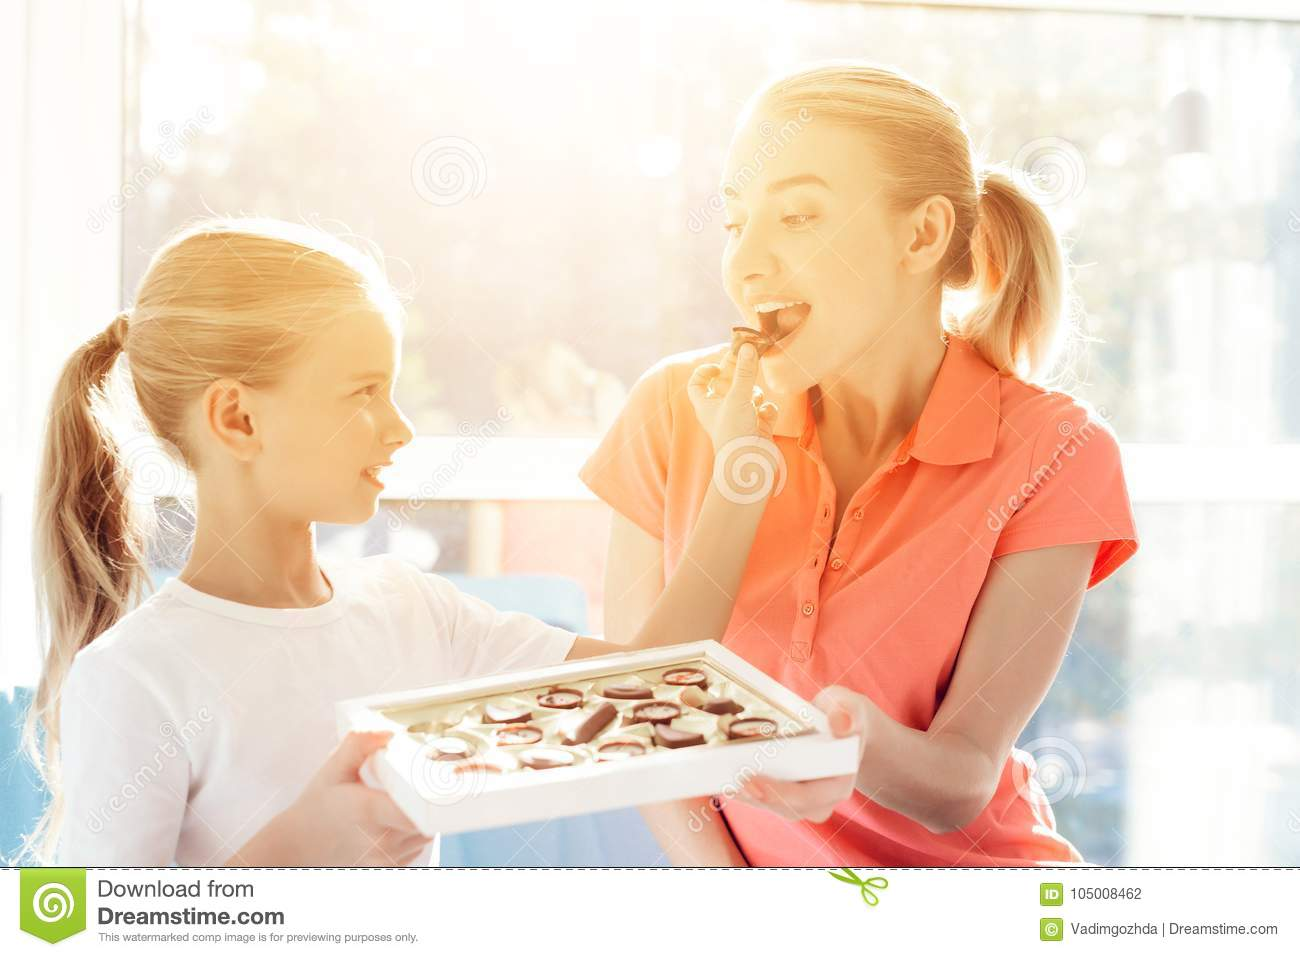 The girl prepared a surprise for her mother. Daughter gave mother a box of chocolates.